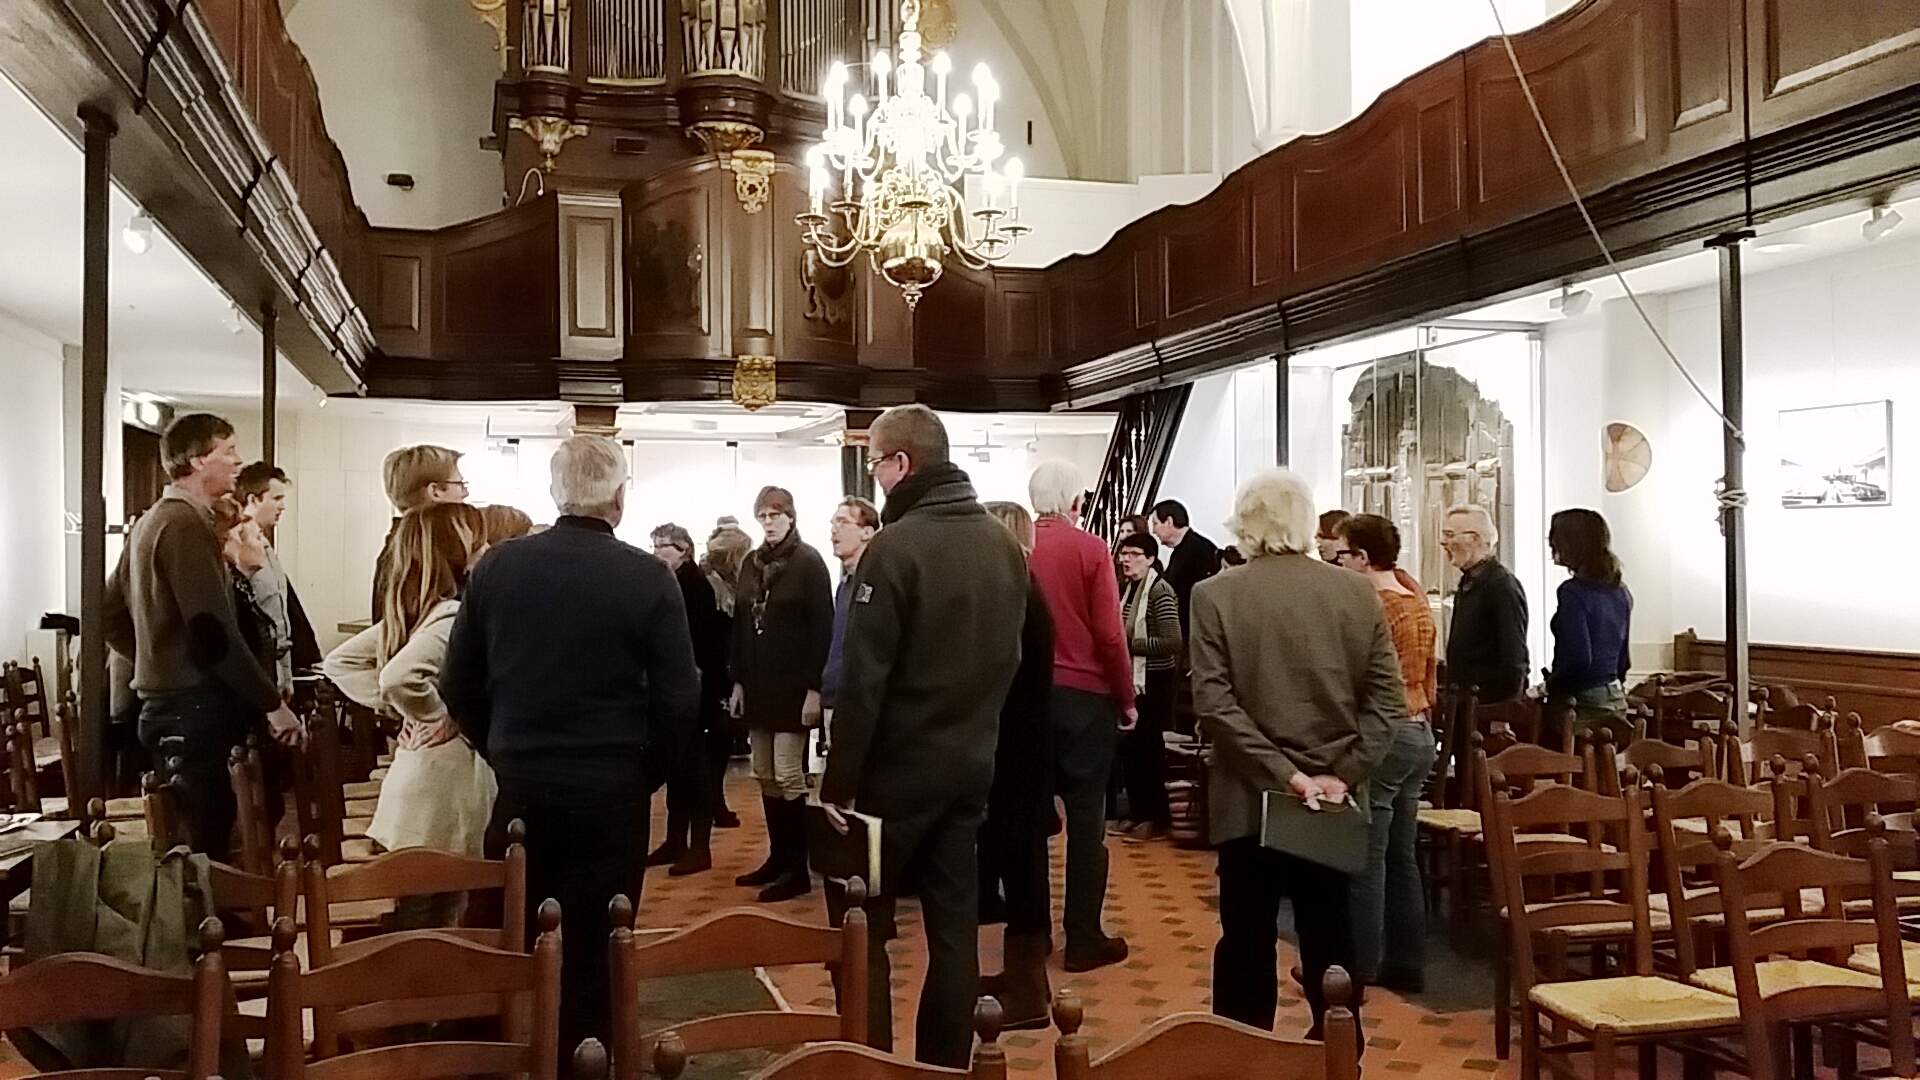 Repetitie Johannes Passion 21 januari 2015 in de Waalse Kerk